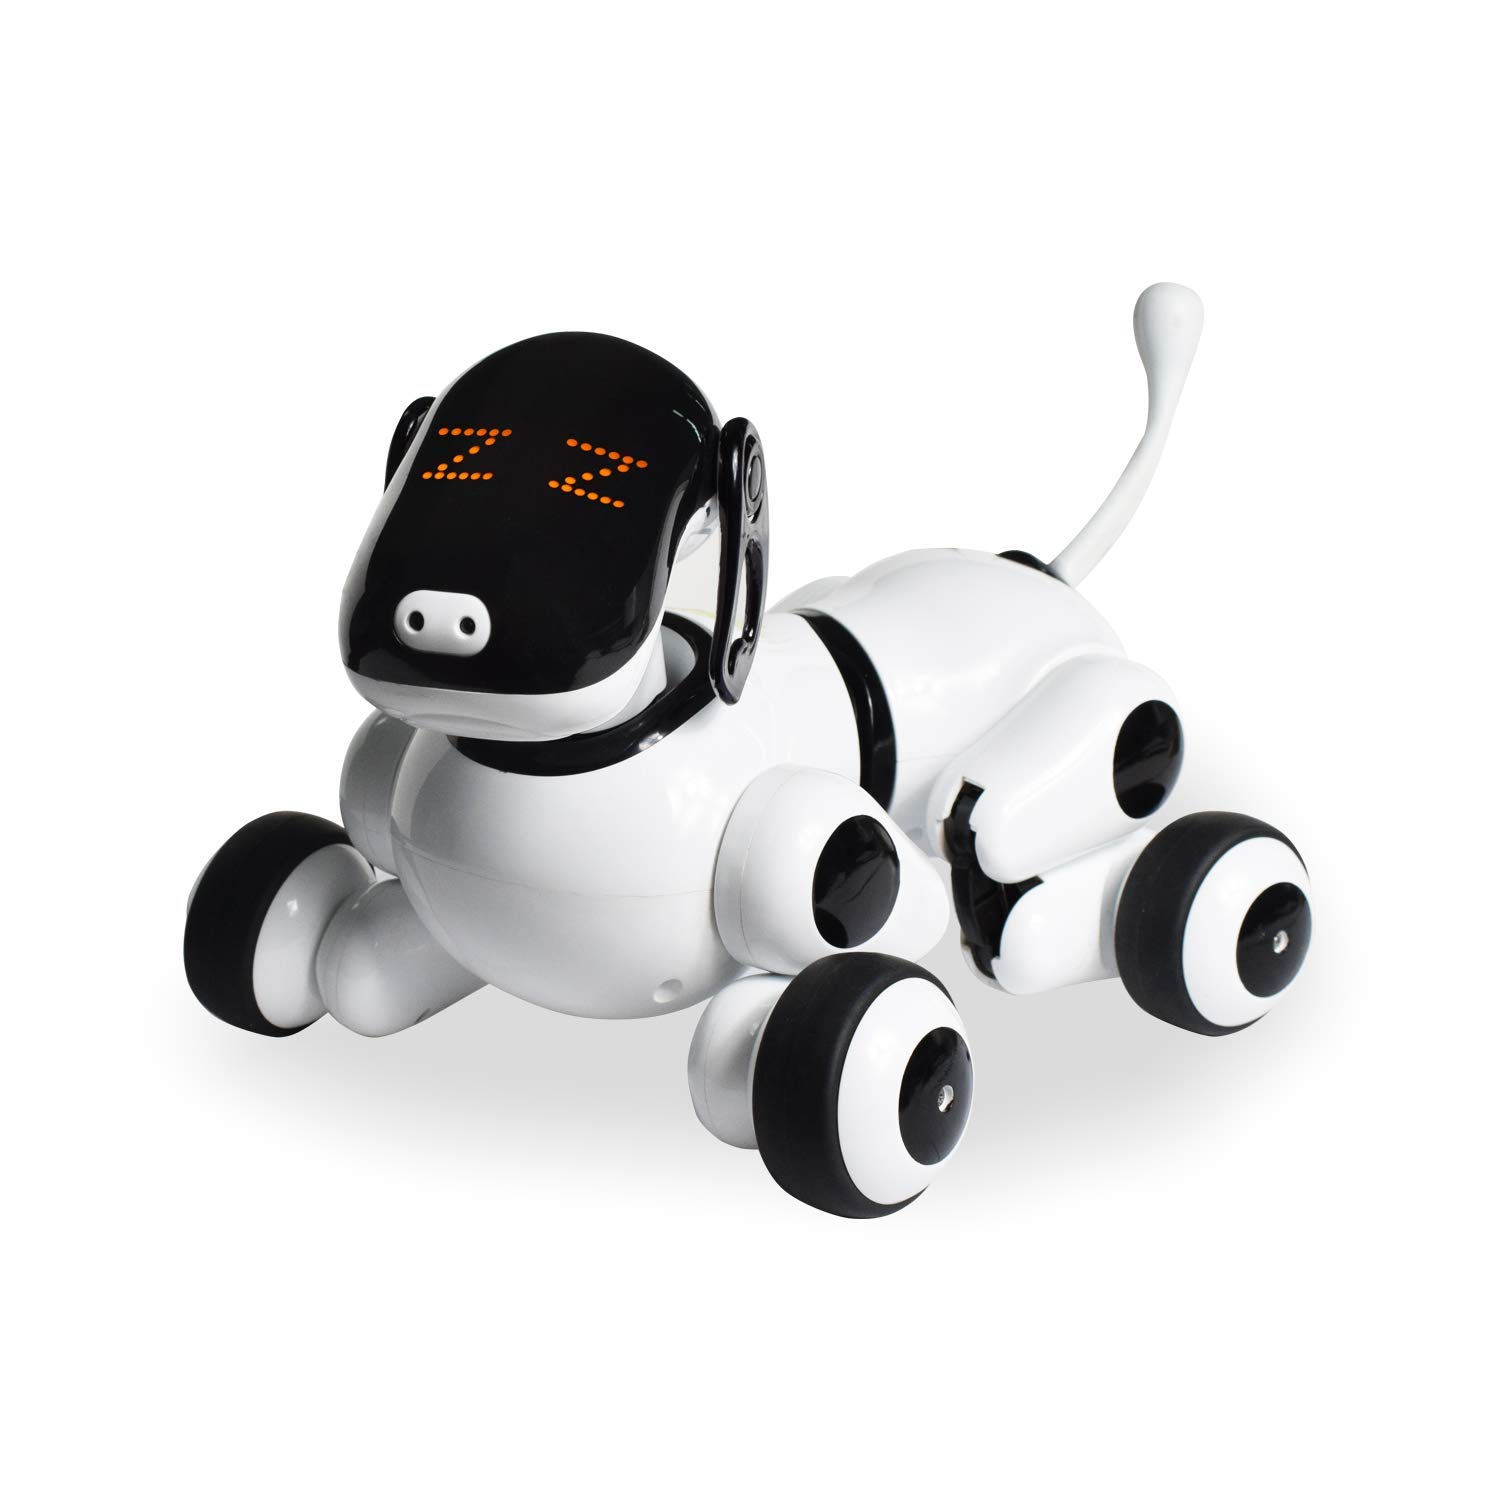 Contixo Independance Day Puppy Smart Interactive Robot Pet Toy for Kids, Voice, App, and Touch Controlled by Contixo (Image #2)